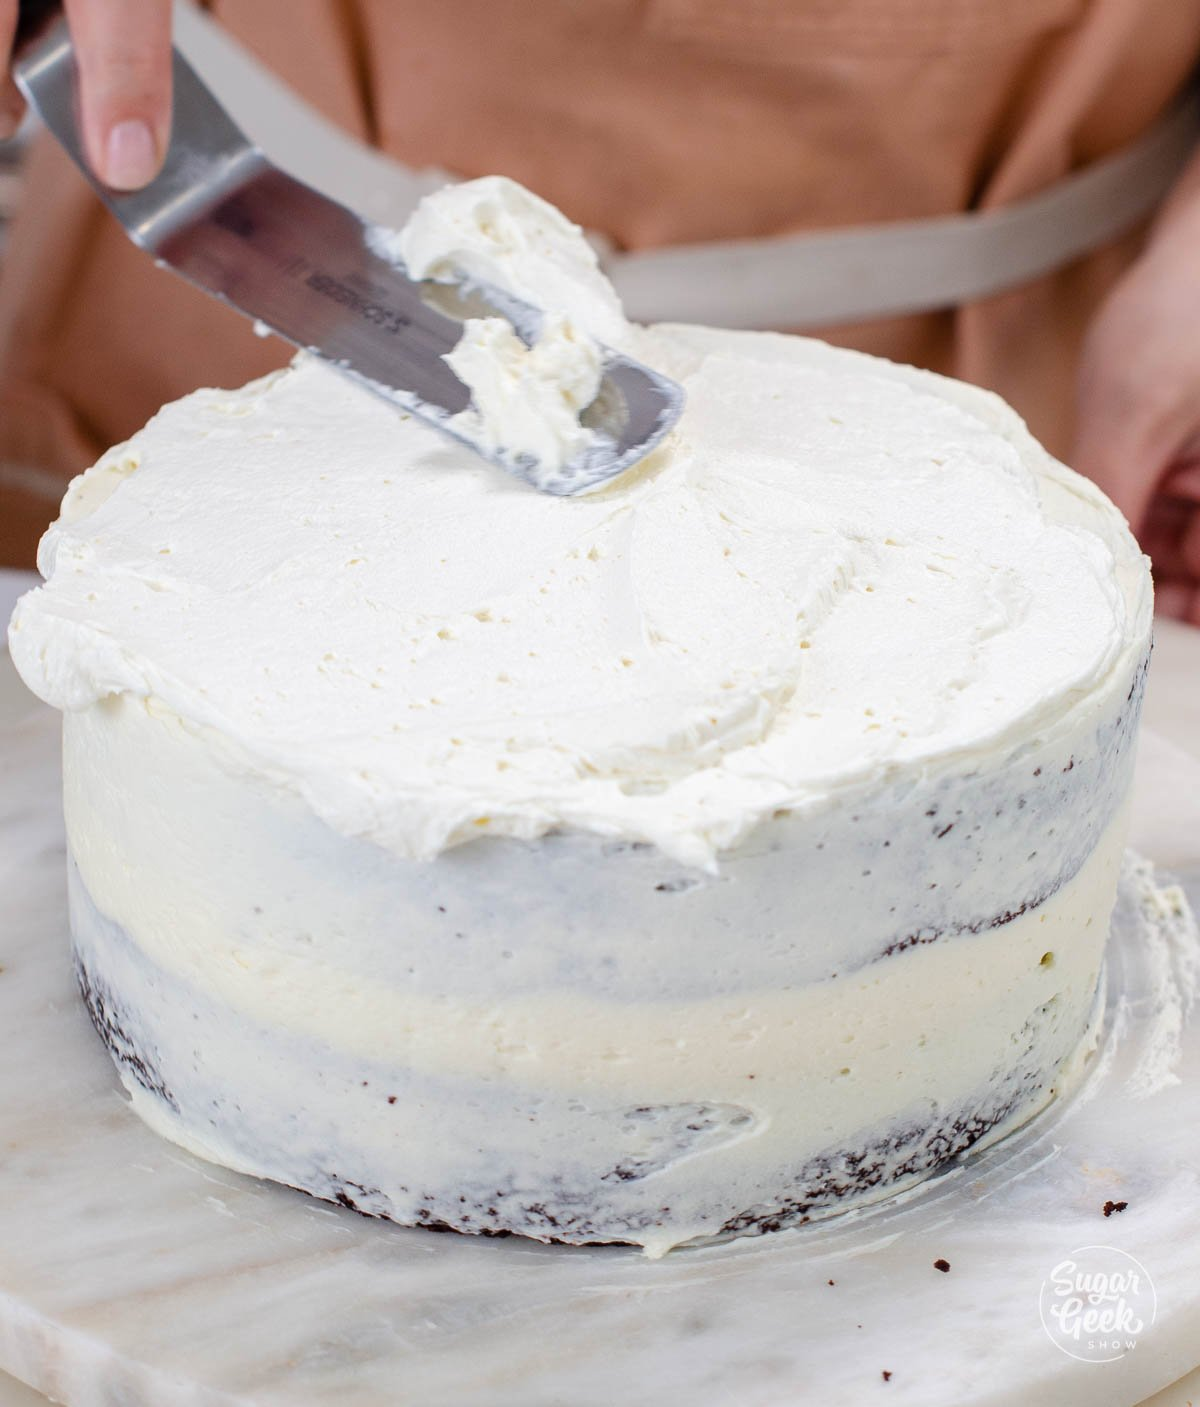 covering the cake in a thin layer of buttercream